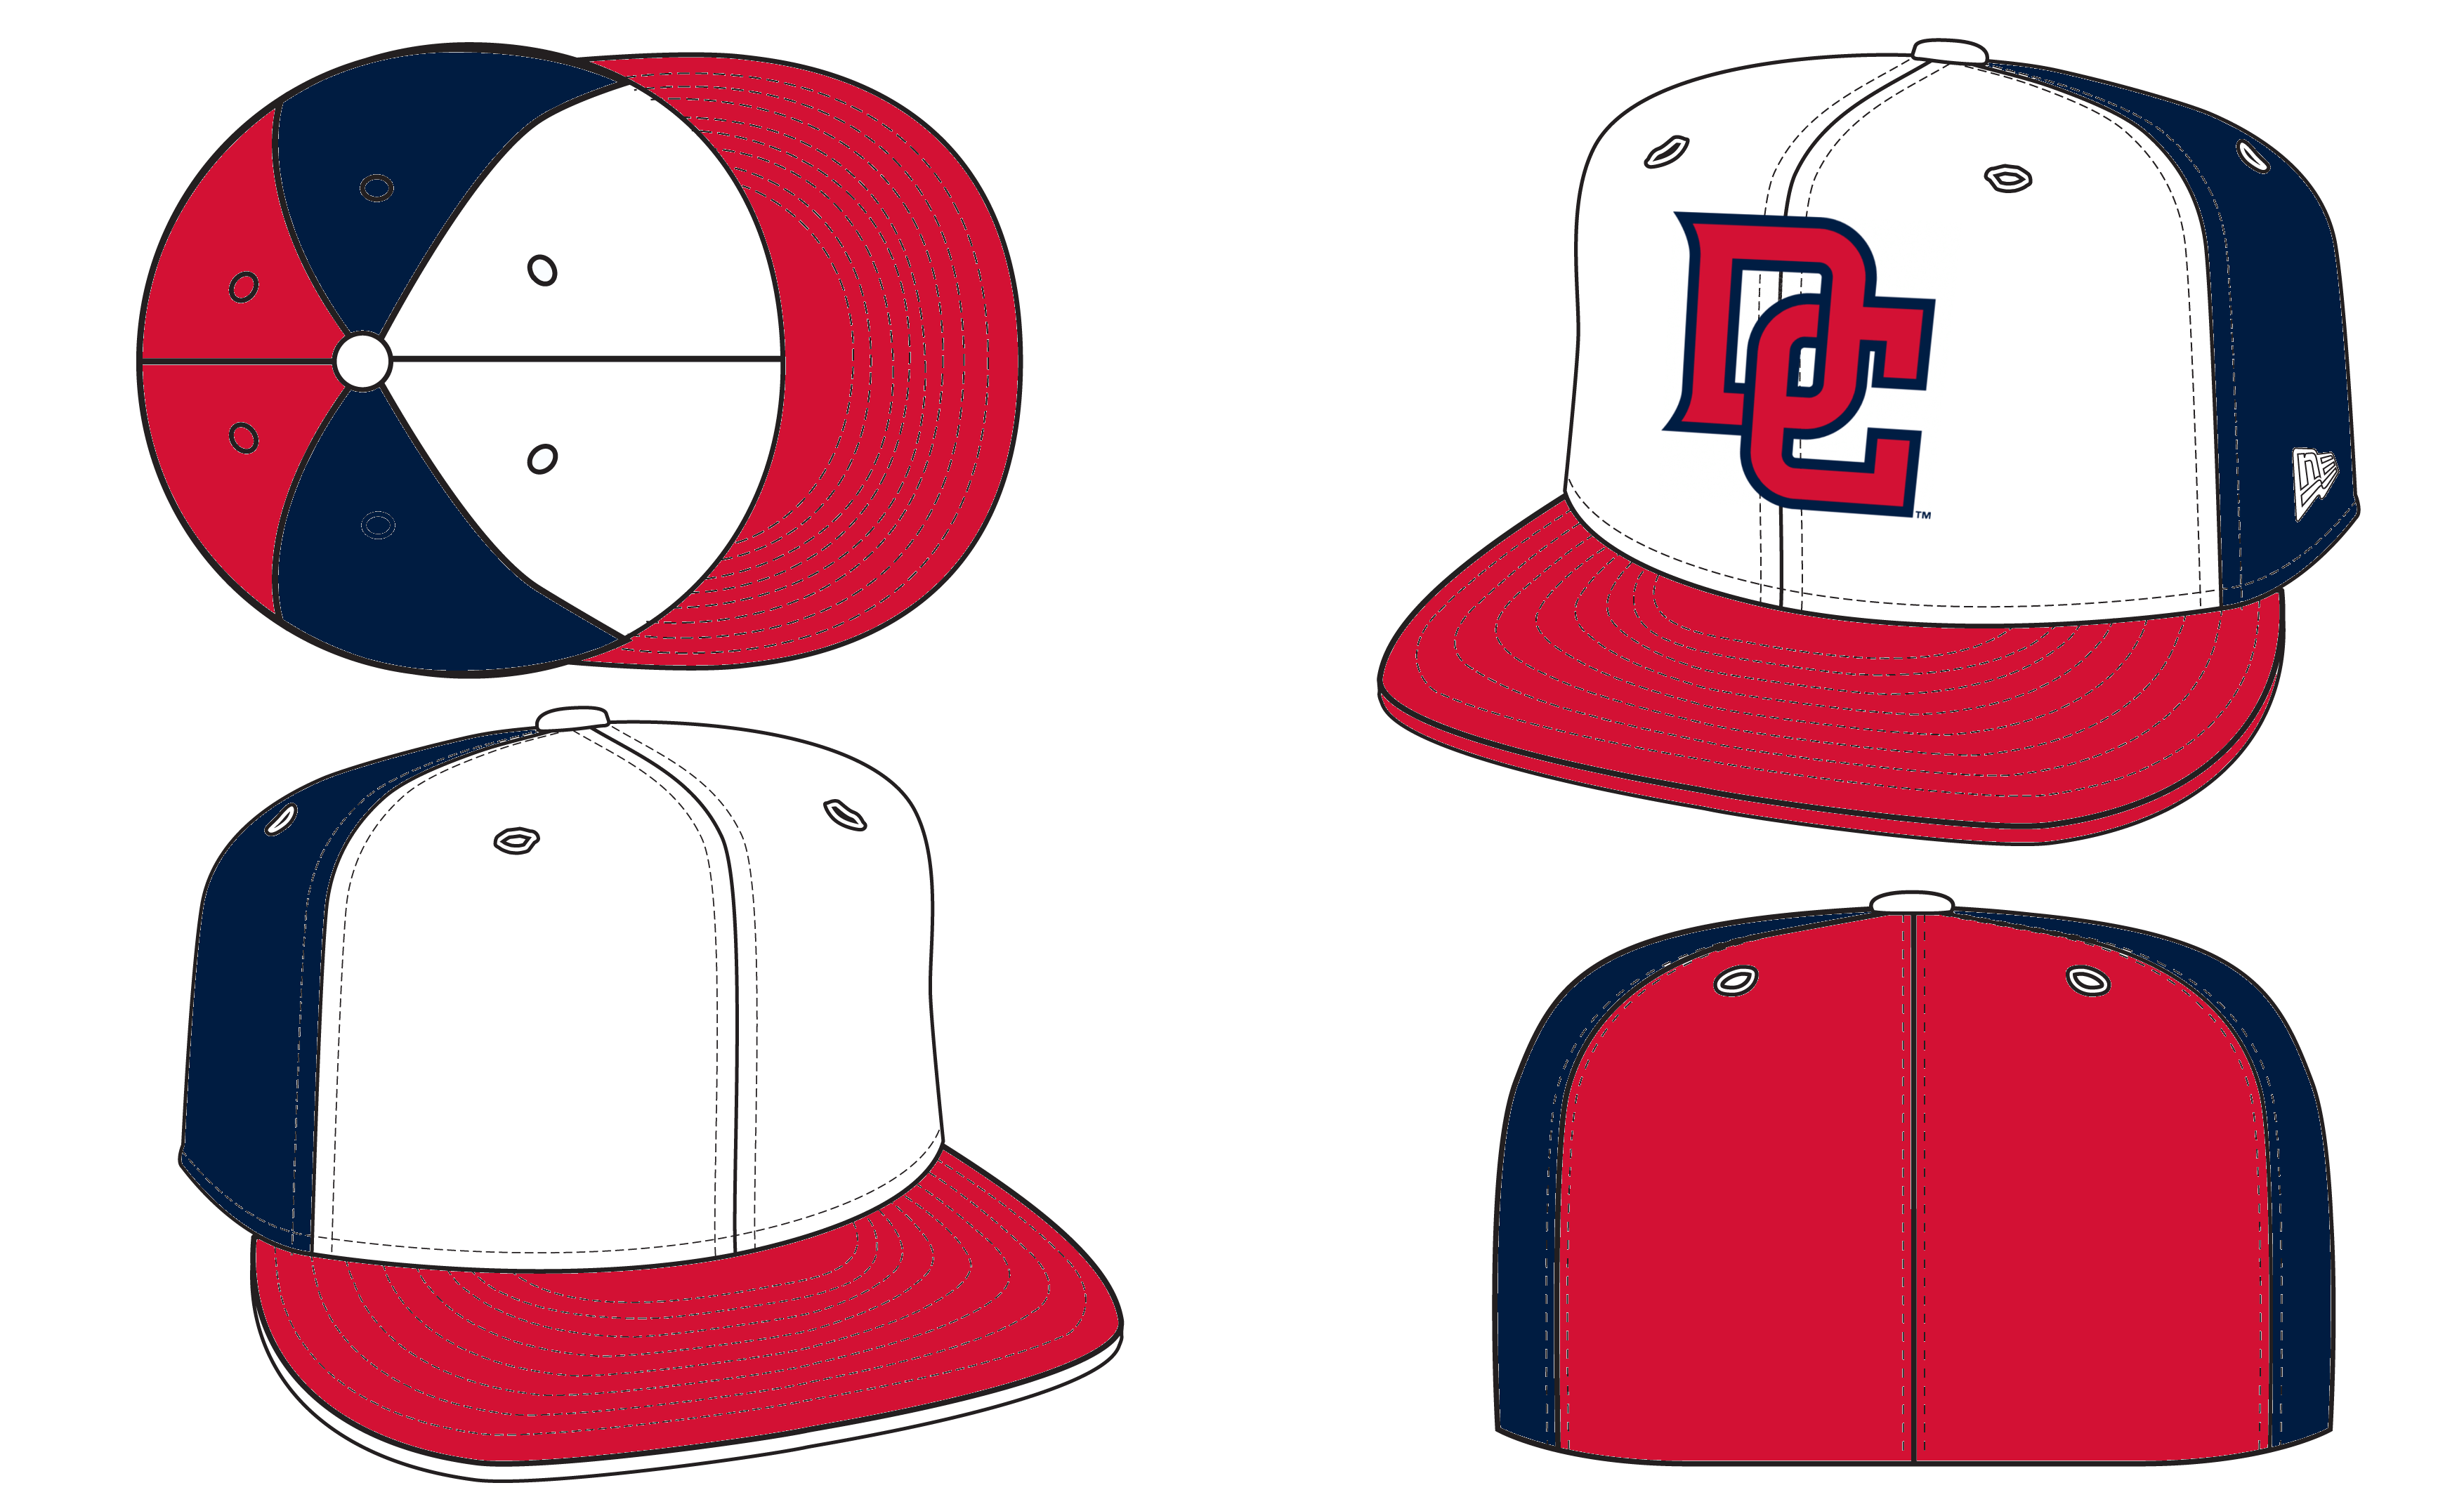 Ripping baseball clipart image freeuse stock A Couple New Caps and Revised Logos for MLB Teams - Concepts - Chris ... image freeuse stock